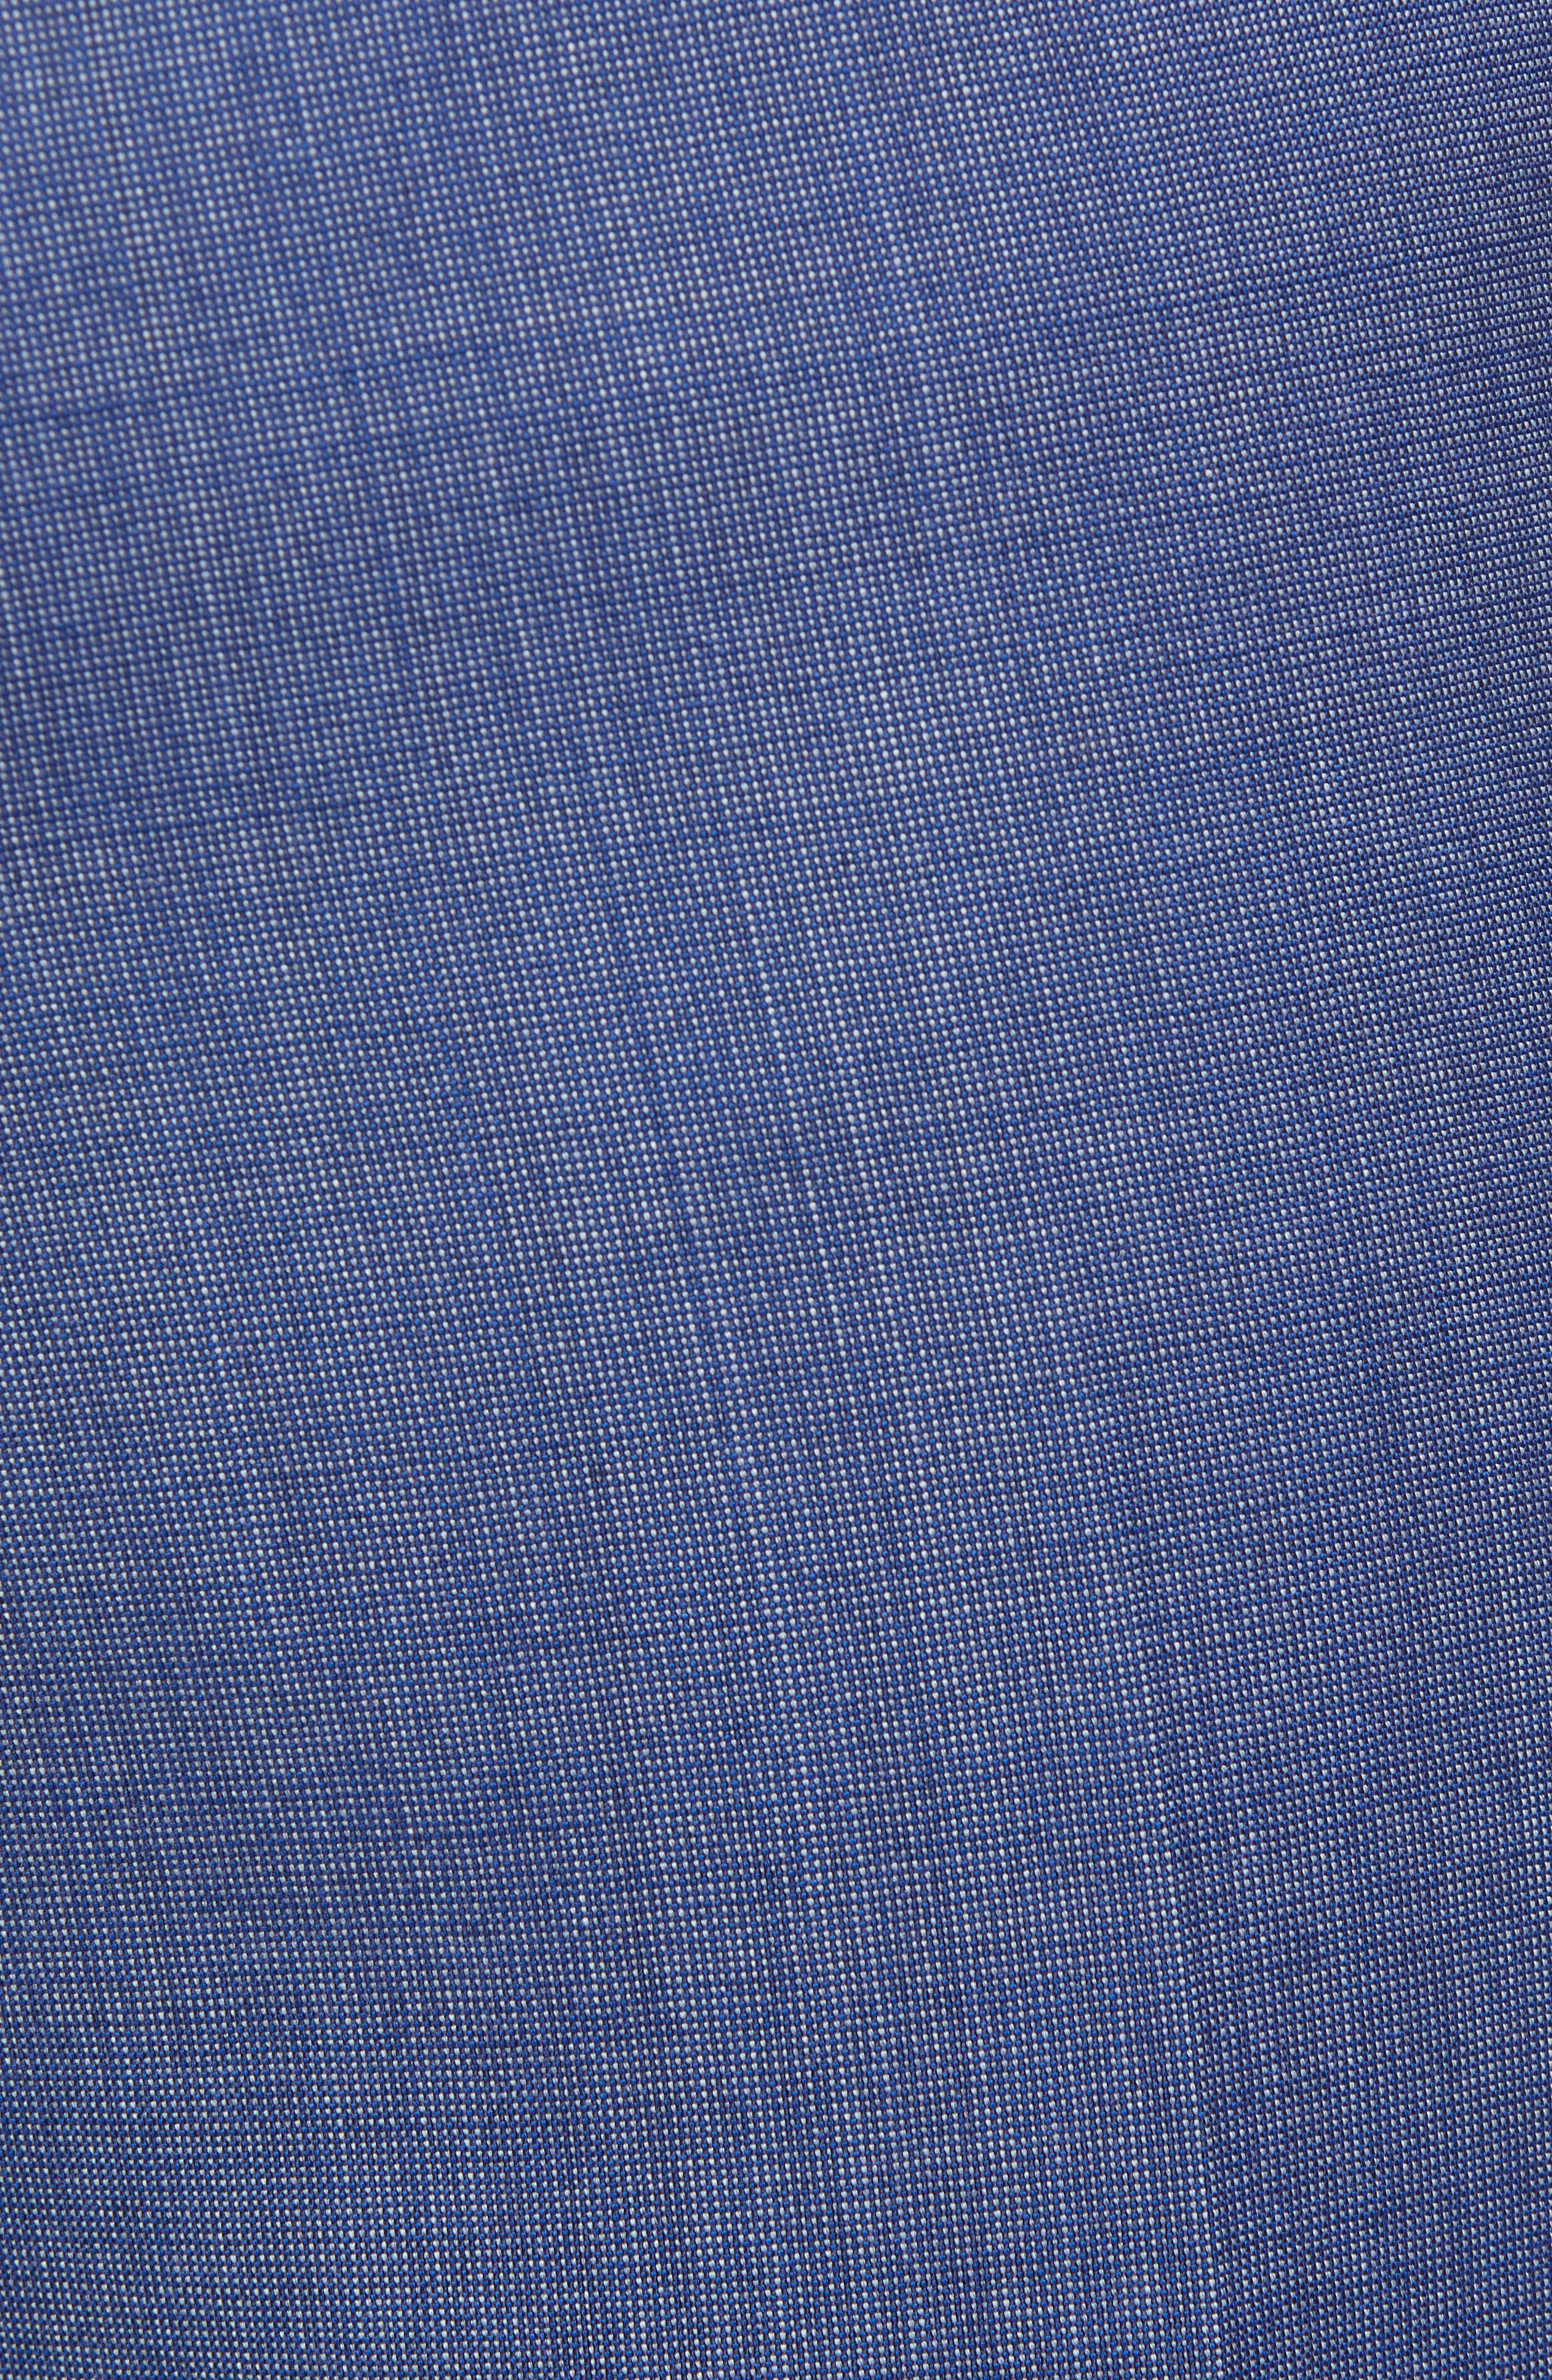 Manufacturing Flat Front Wool Trousers,                             Alternate thumbnail 5, color,                             BLUE